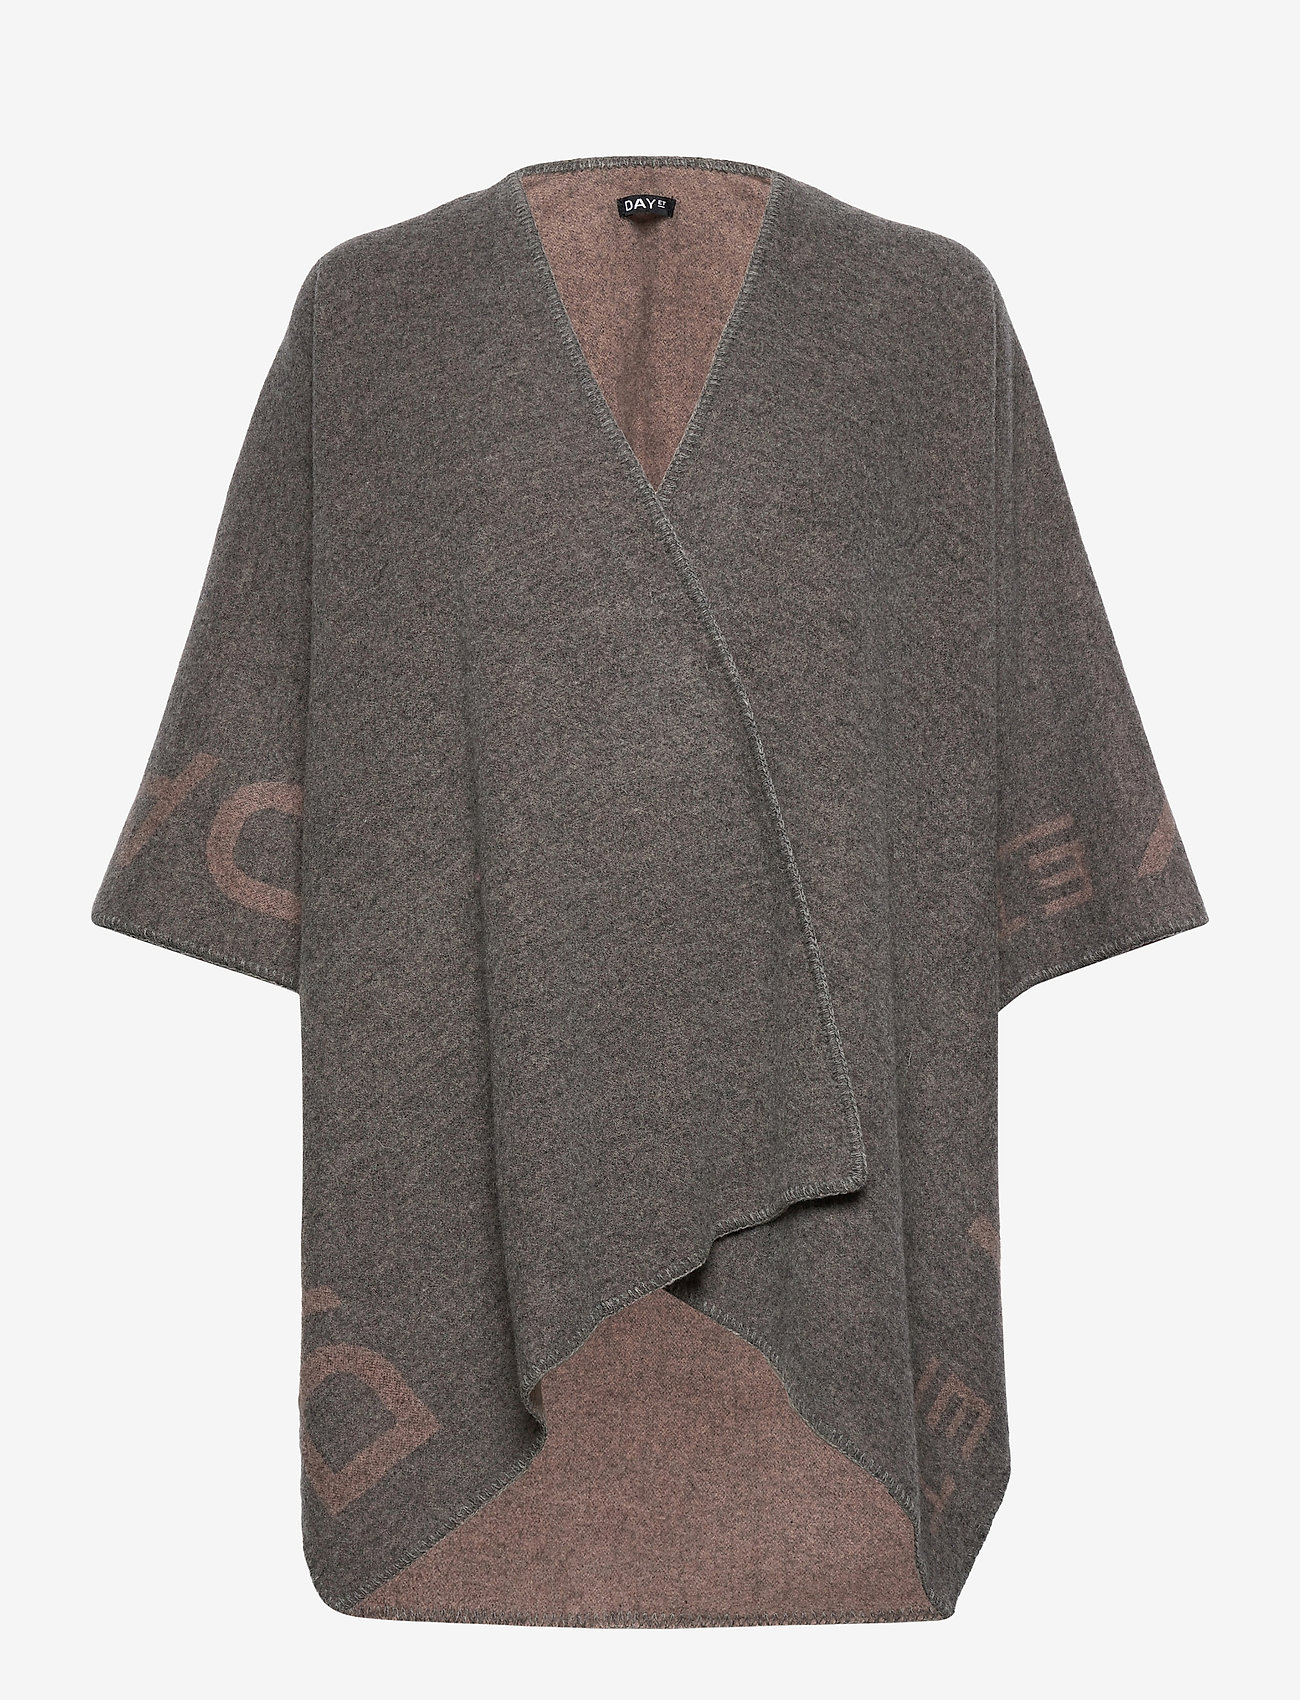 DAY et - Day ET Logo Poncho - ponchos en capes - forged iron grey - 0